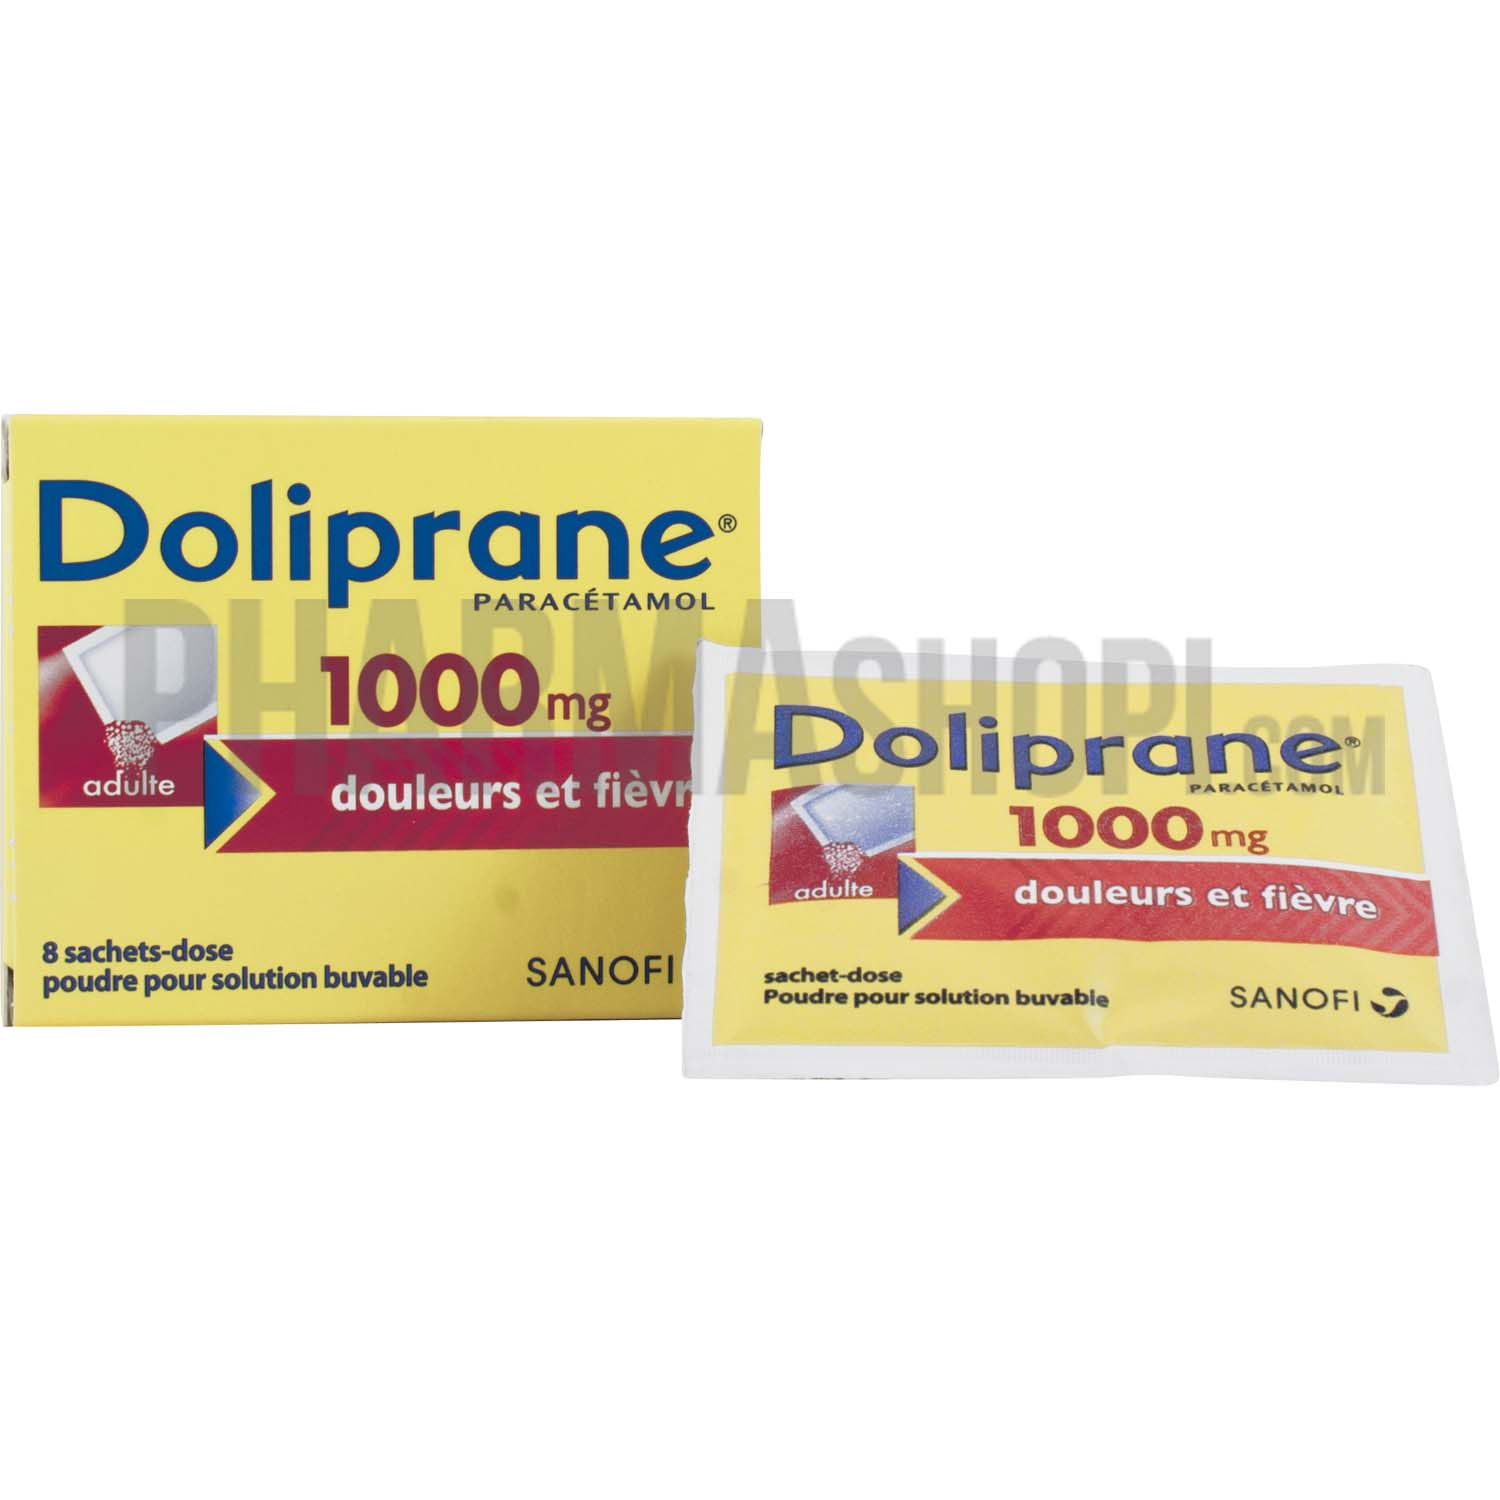 doliprane 1000mg poudre pour solution buvable 8 sachet doses. Black Bedroom Furniture Sets. Home Design Ideas